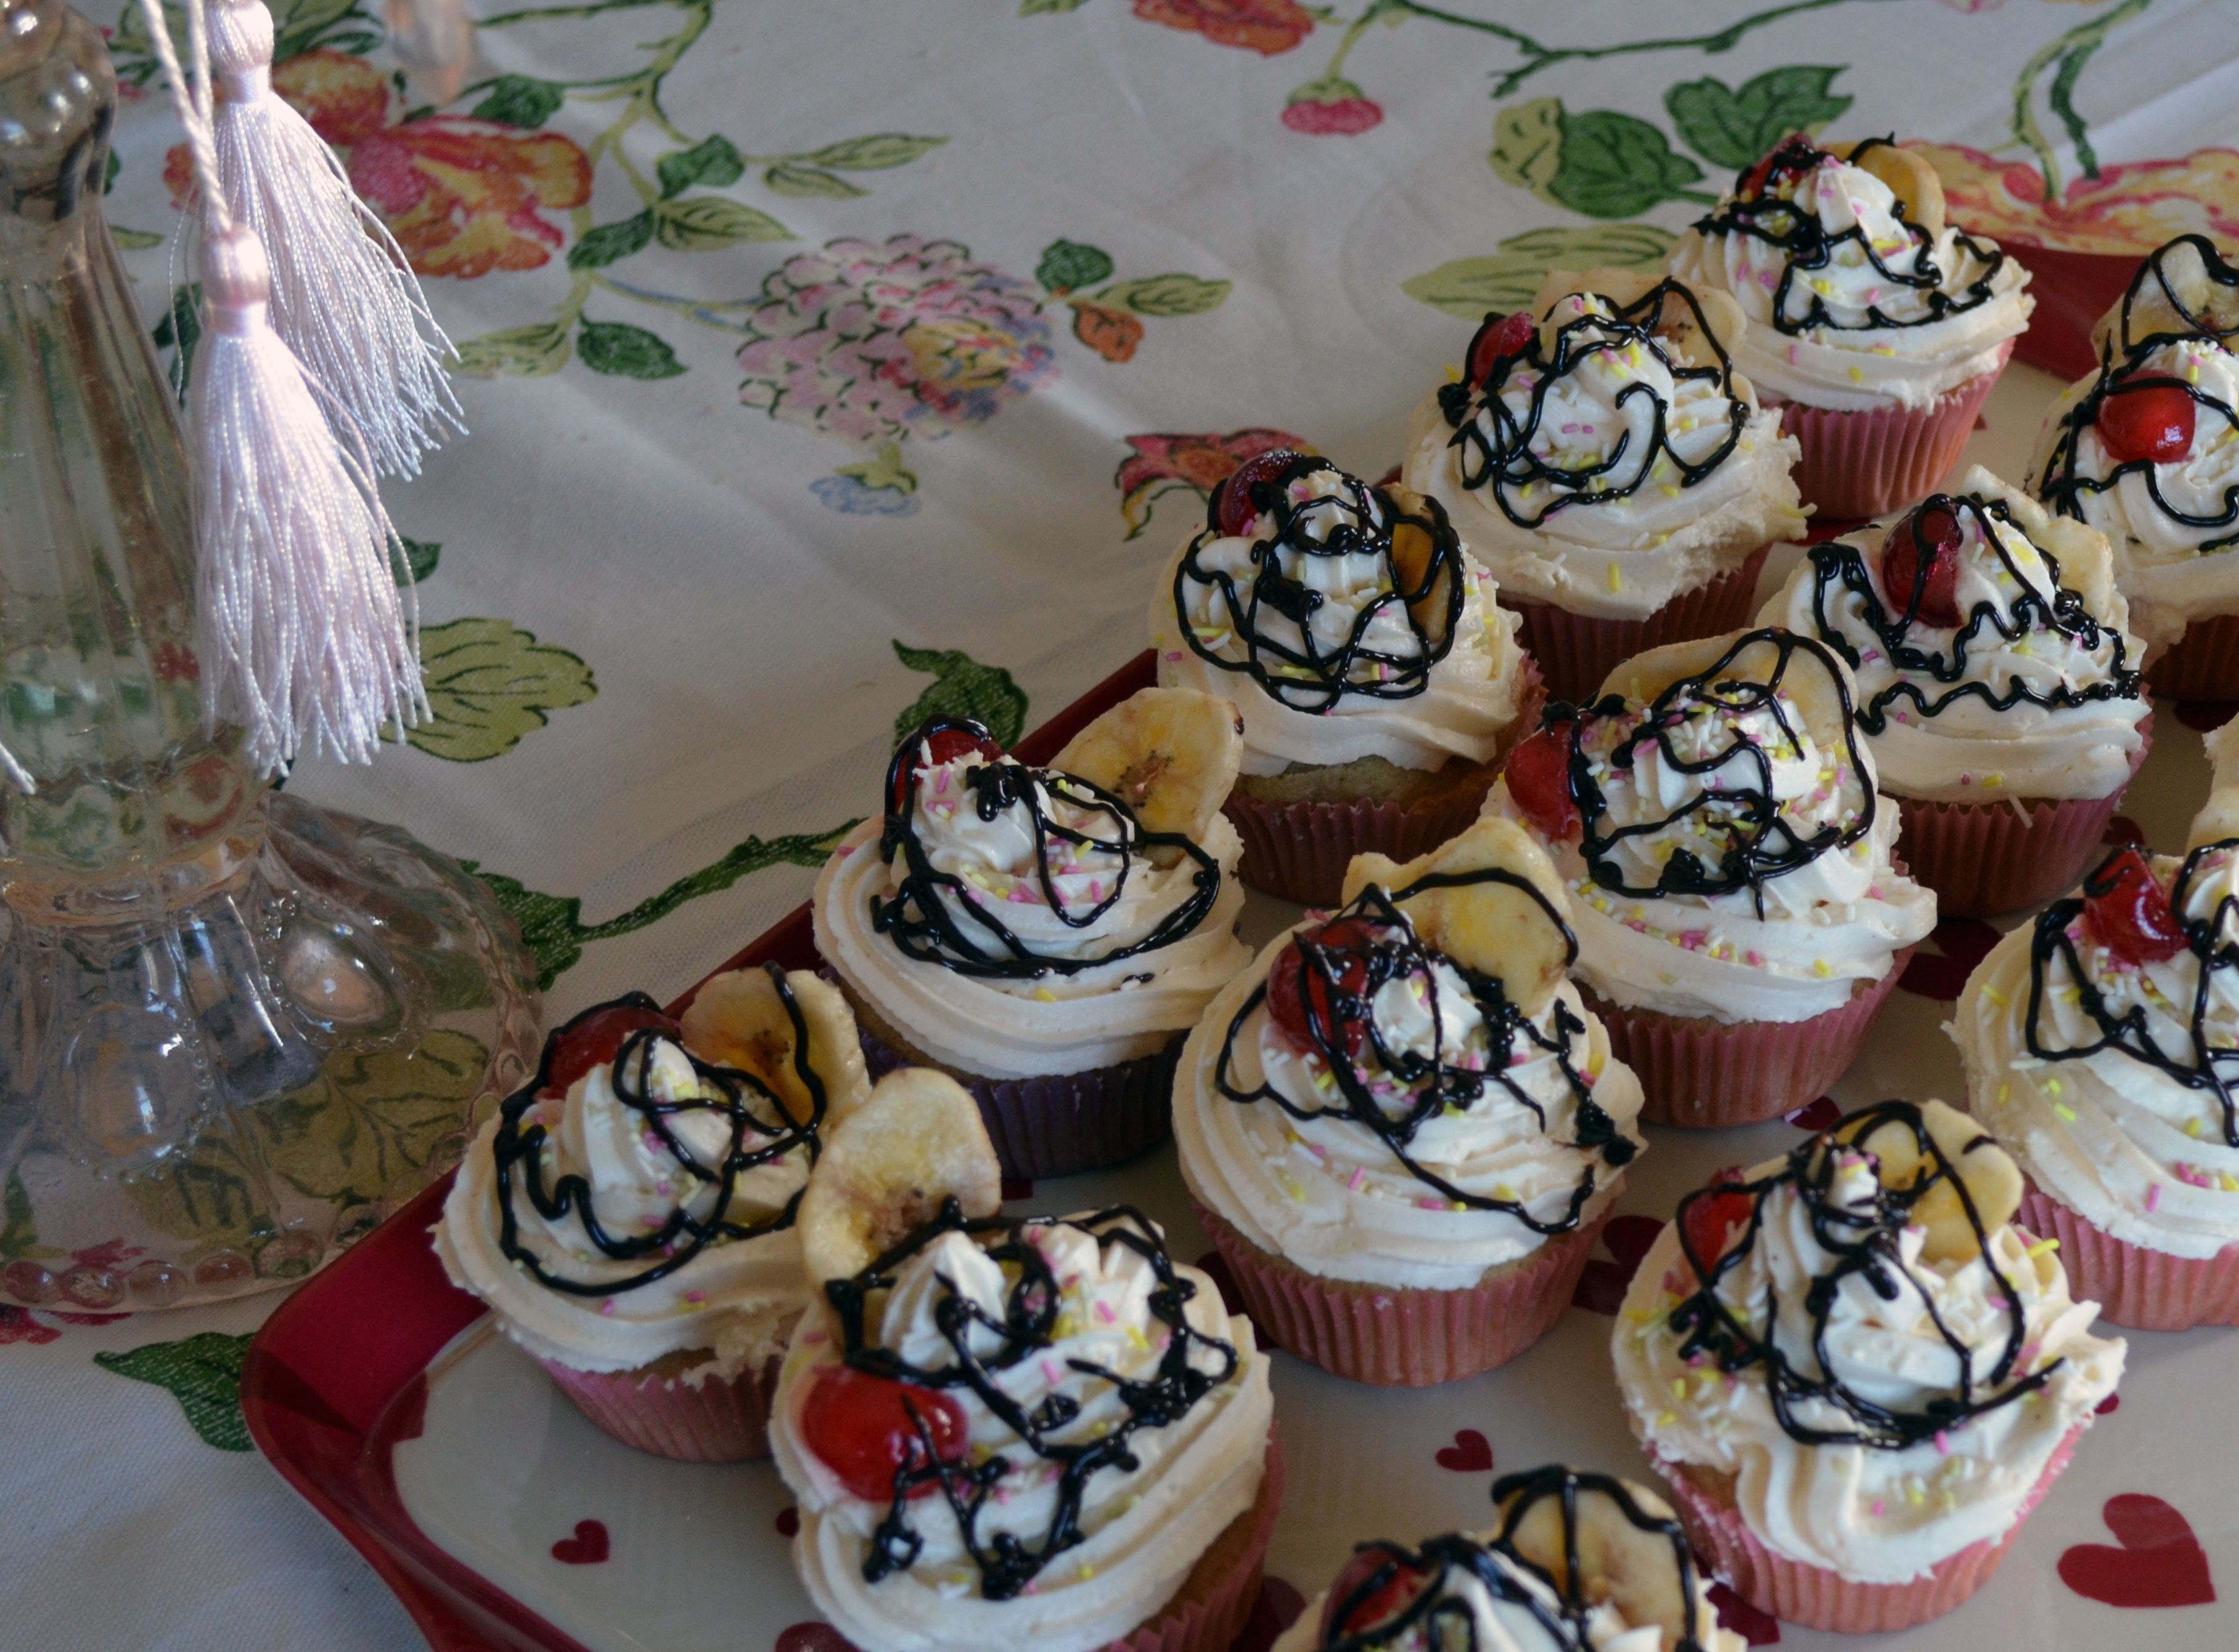 Vanilla Party Cupcakes by Cakeability.  All vegan.